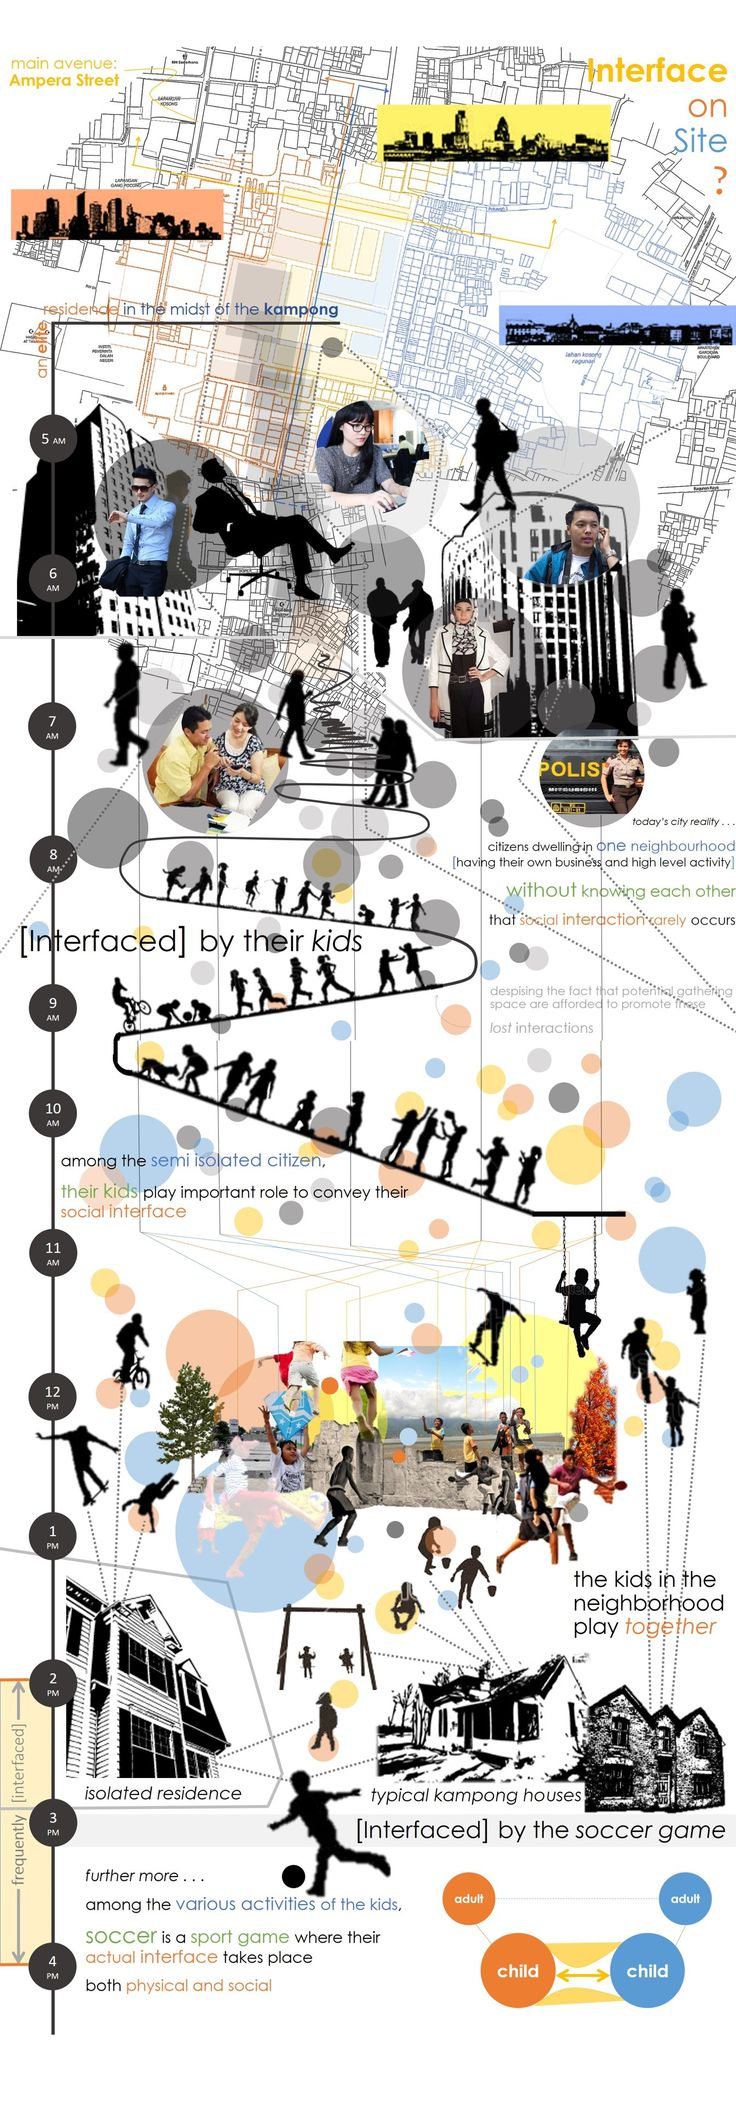 The mechanism of both social (abstract) and physical (elements) interfaces on site conveyed from the diagram contains actors' activity and random differentiation of dwelling areas. Socially isolated citizens of today's city reality are considered as certain faces, that in between them exist an indirect relationship through their daily-together-playing-kids.